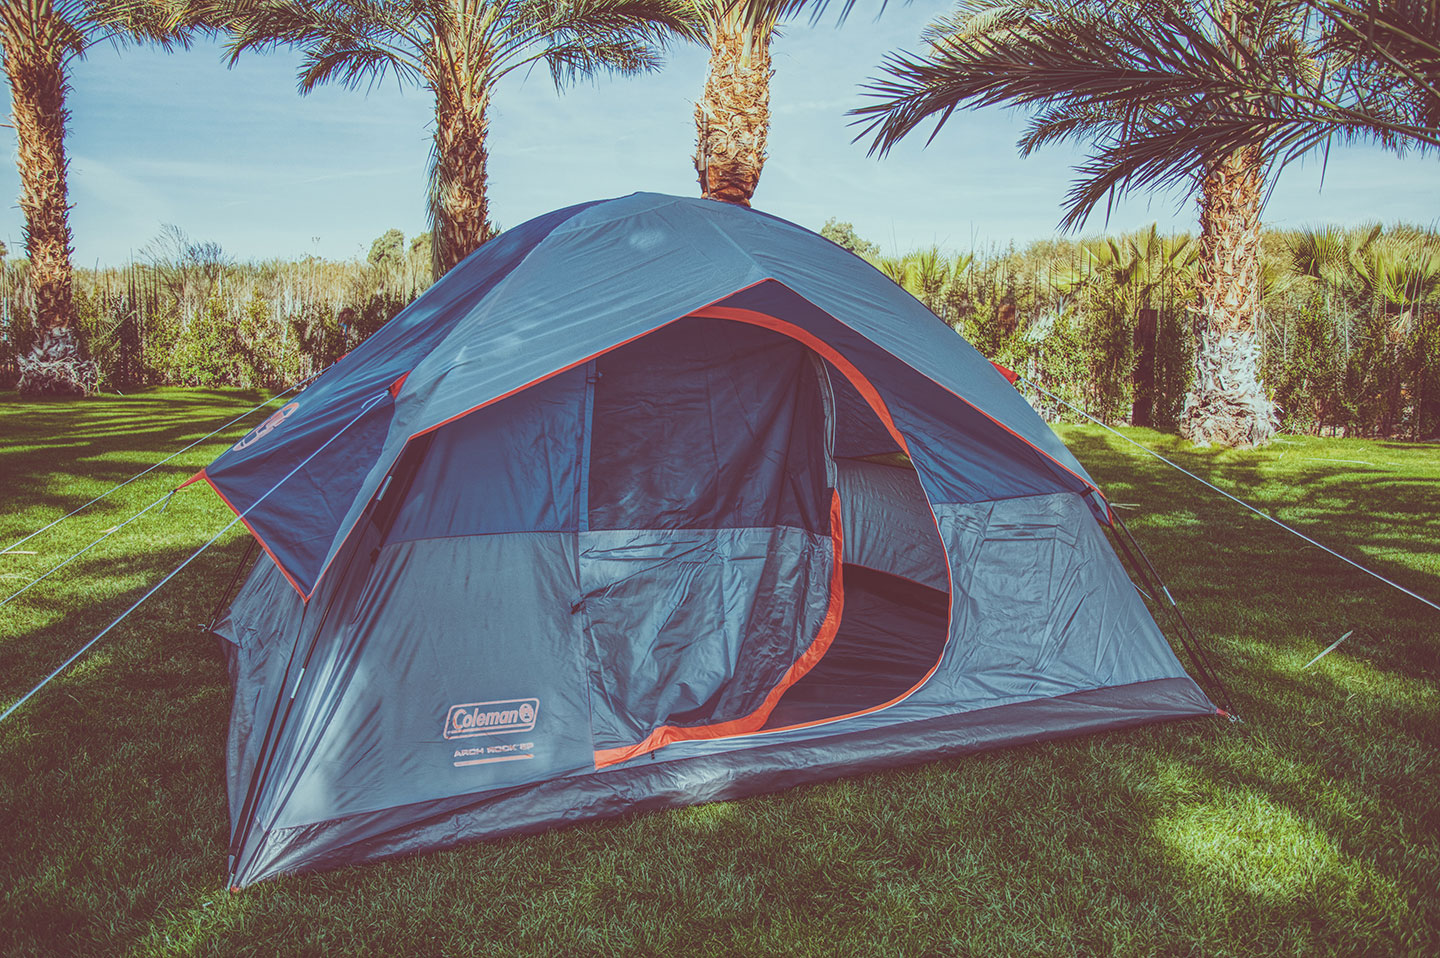 BYO Tent on GRASS